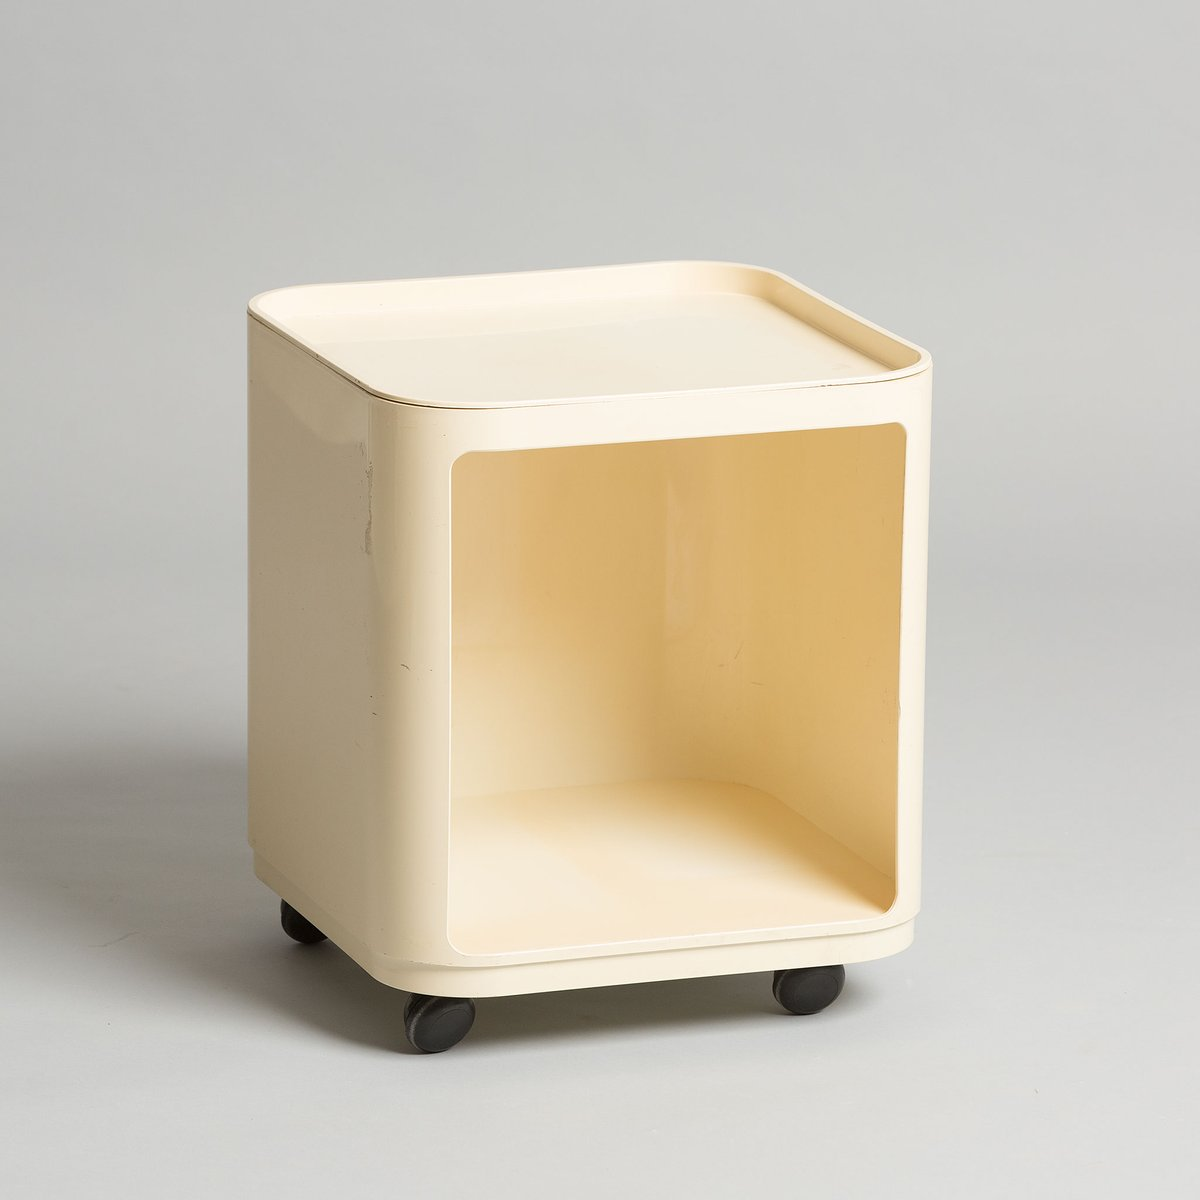 Model 4979 Side Table By Anna Castelli For Kartell, 1960s